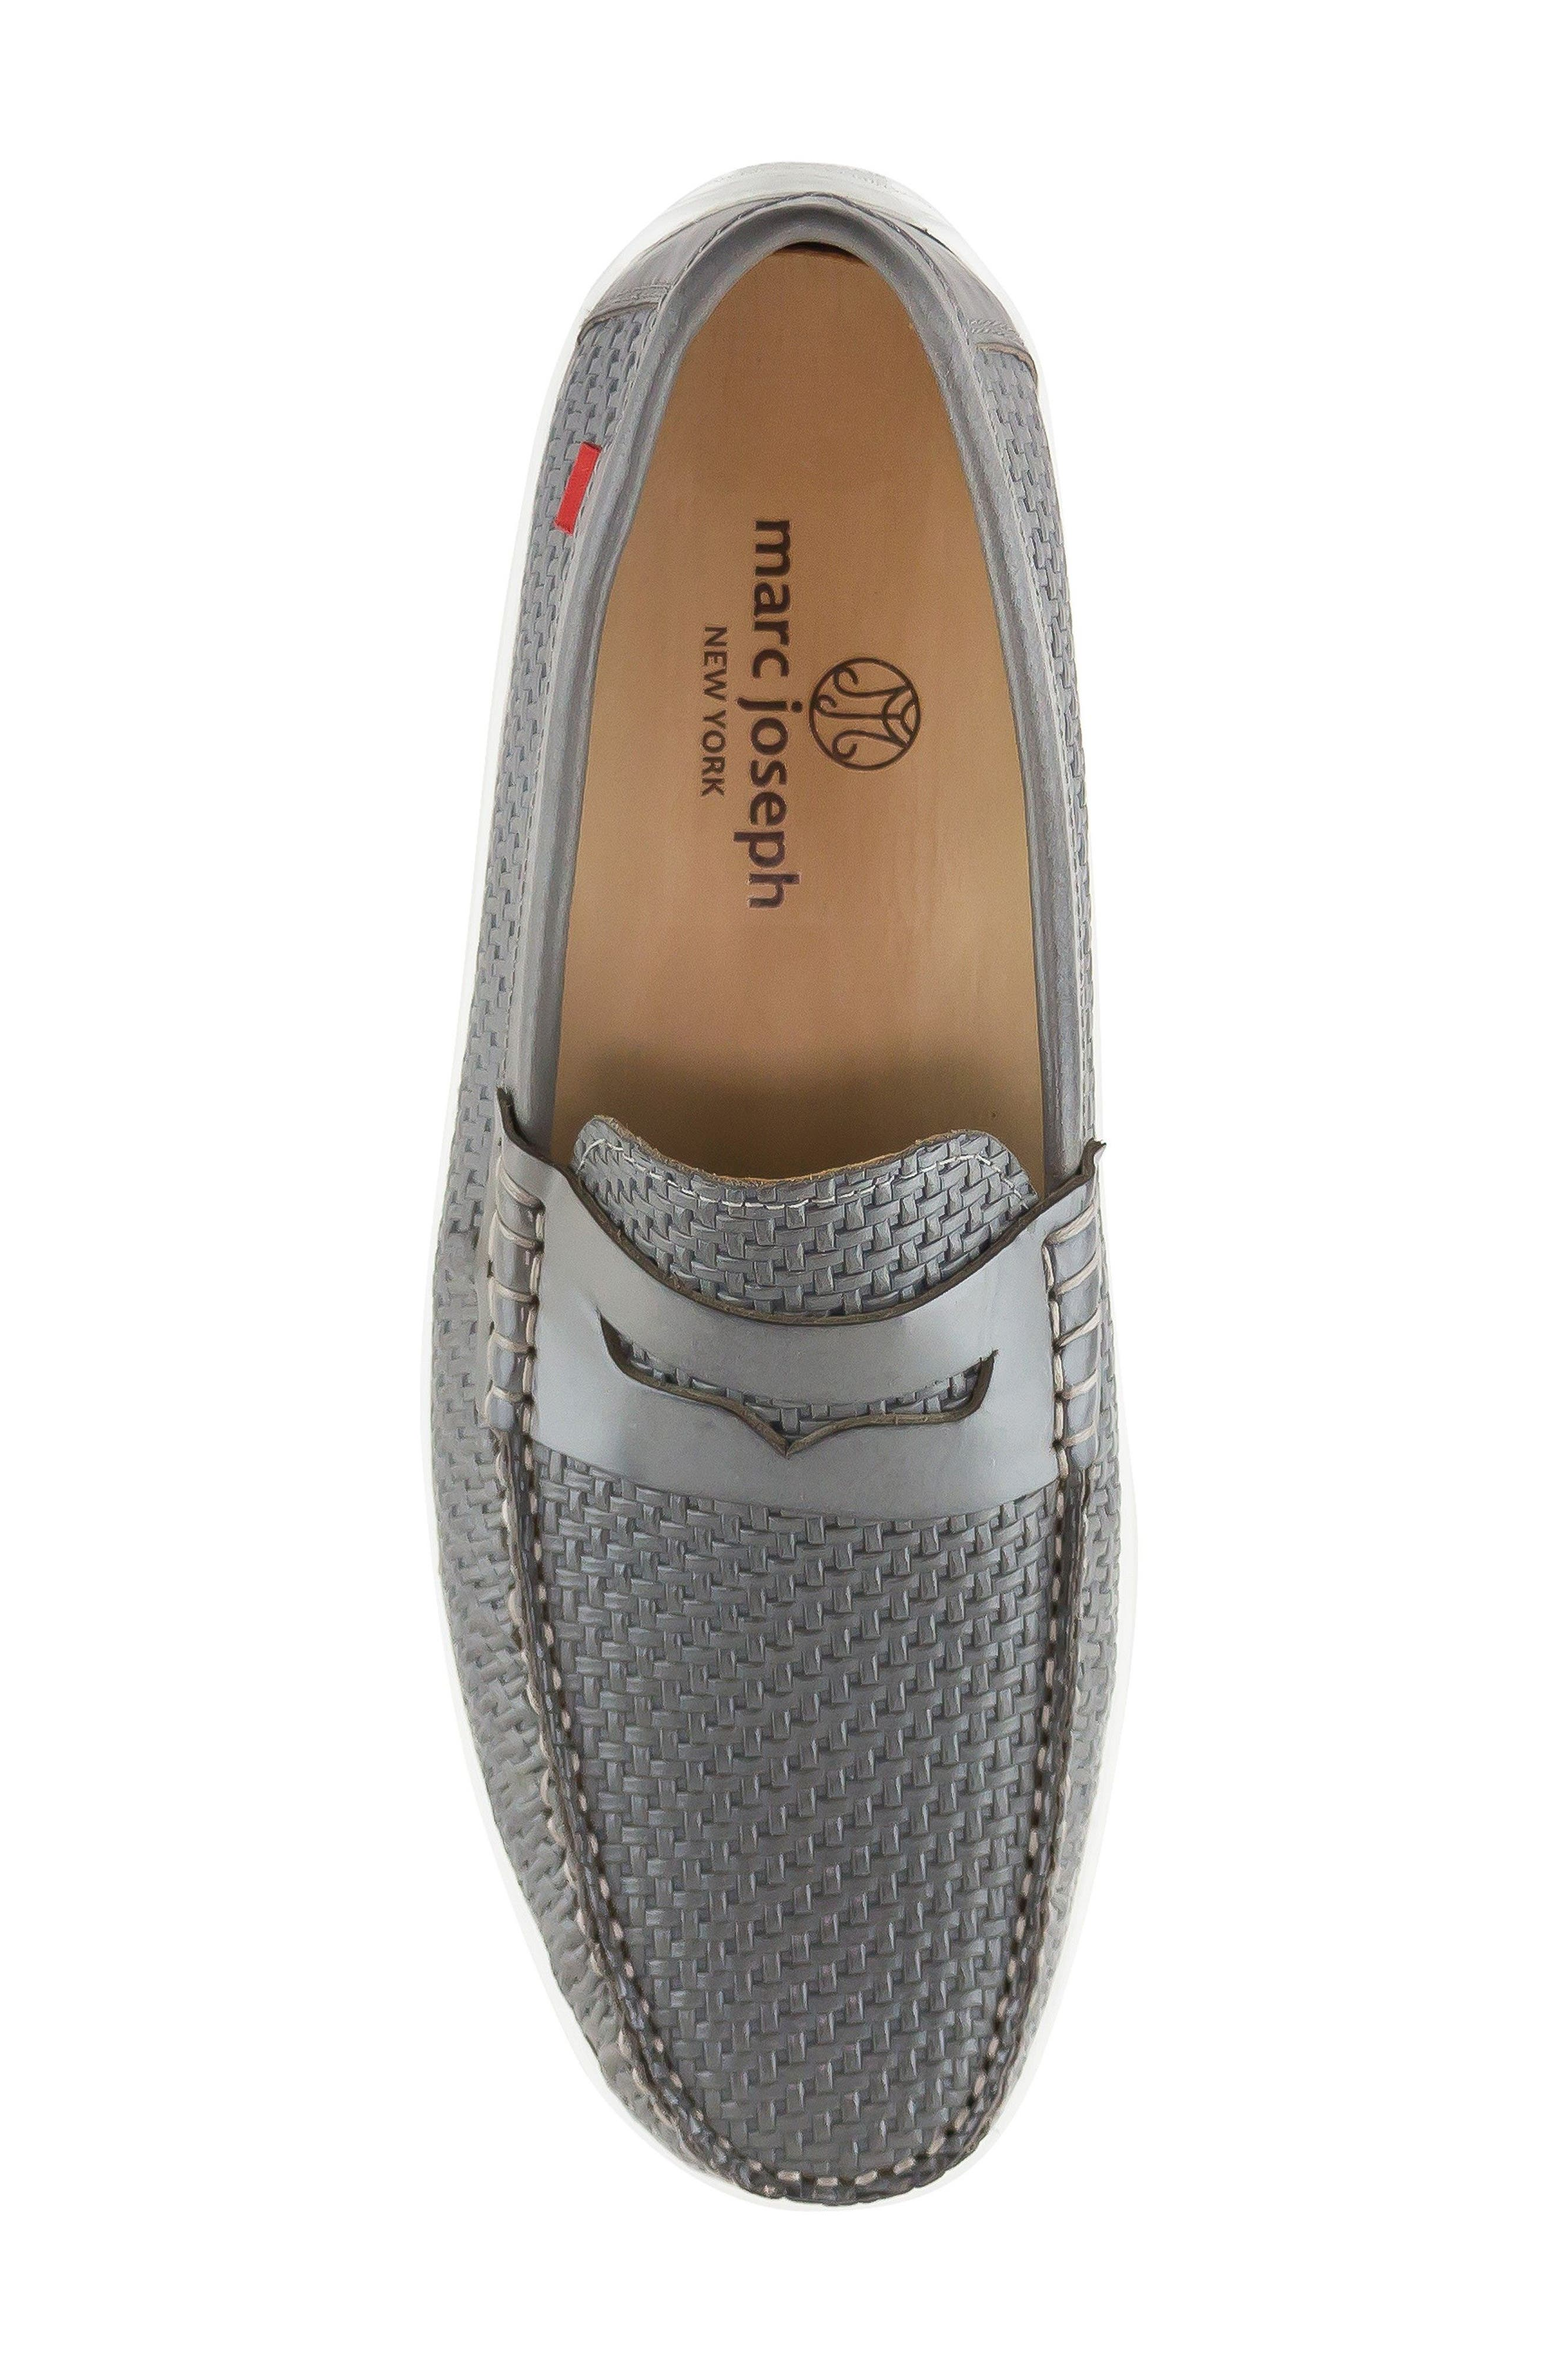 Atlantic Penny Loafer,                             Alternate thumbnail 5, color,                             Grey Leather